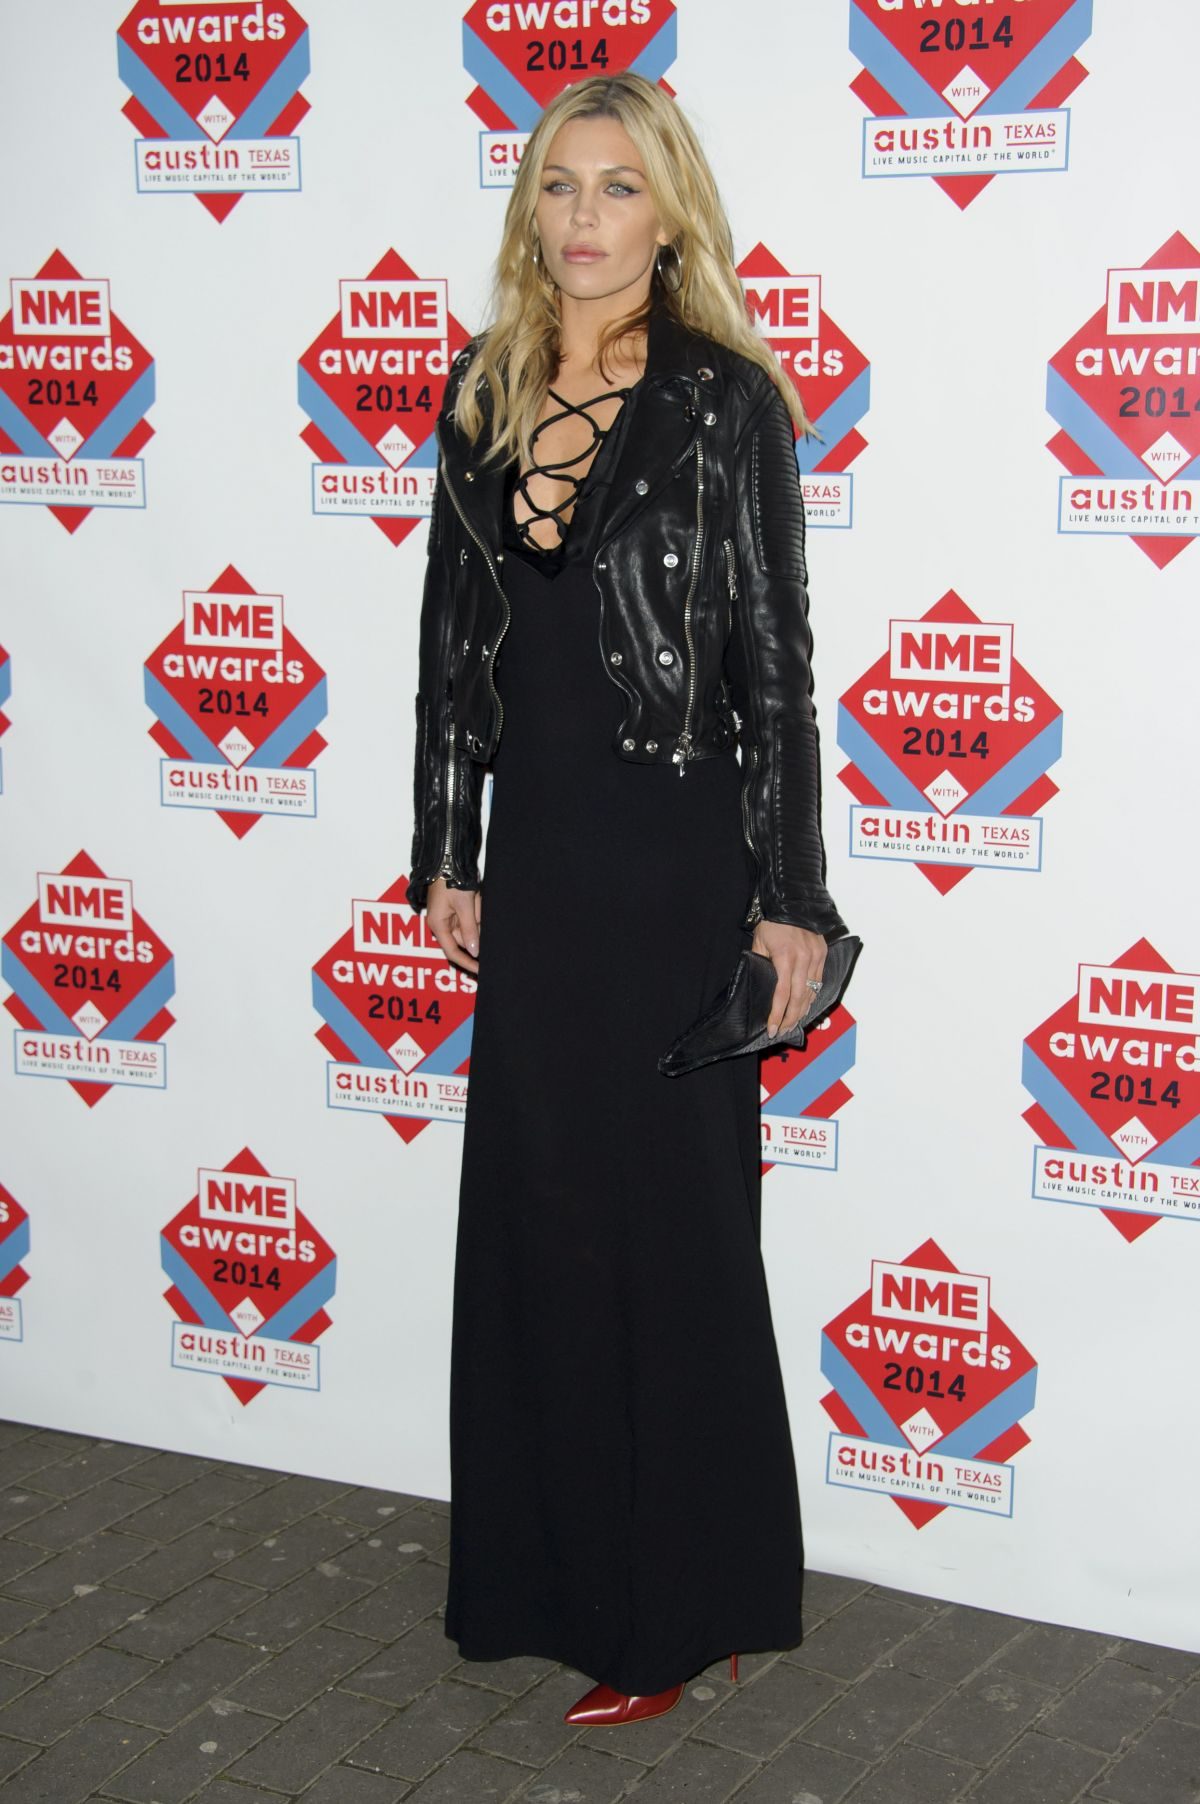 ABBEY CLANCY at 2014 NME Awards in London